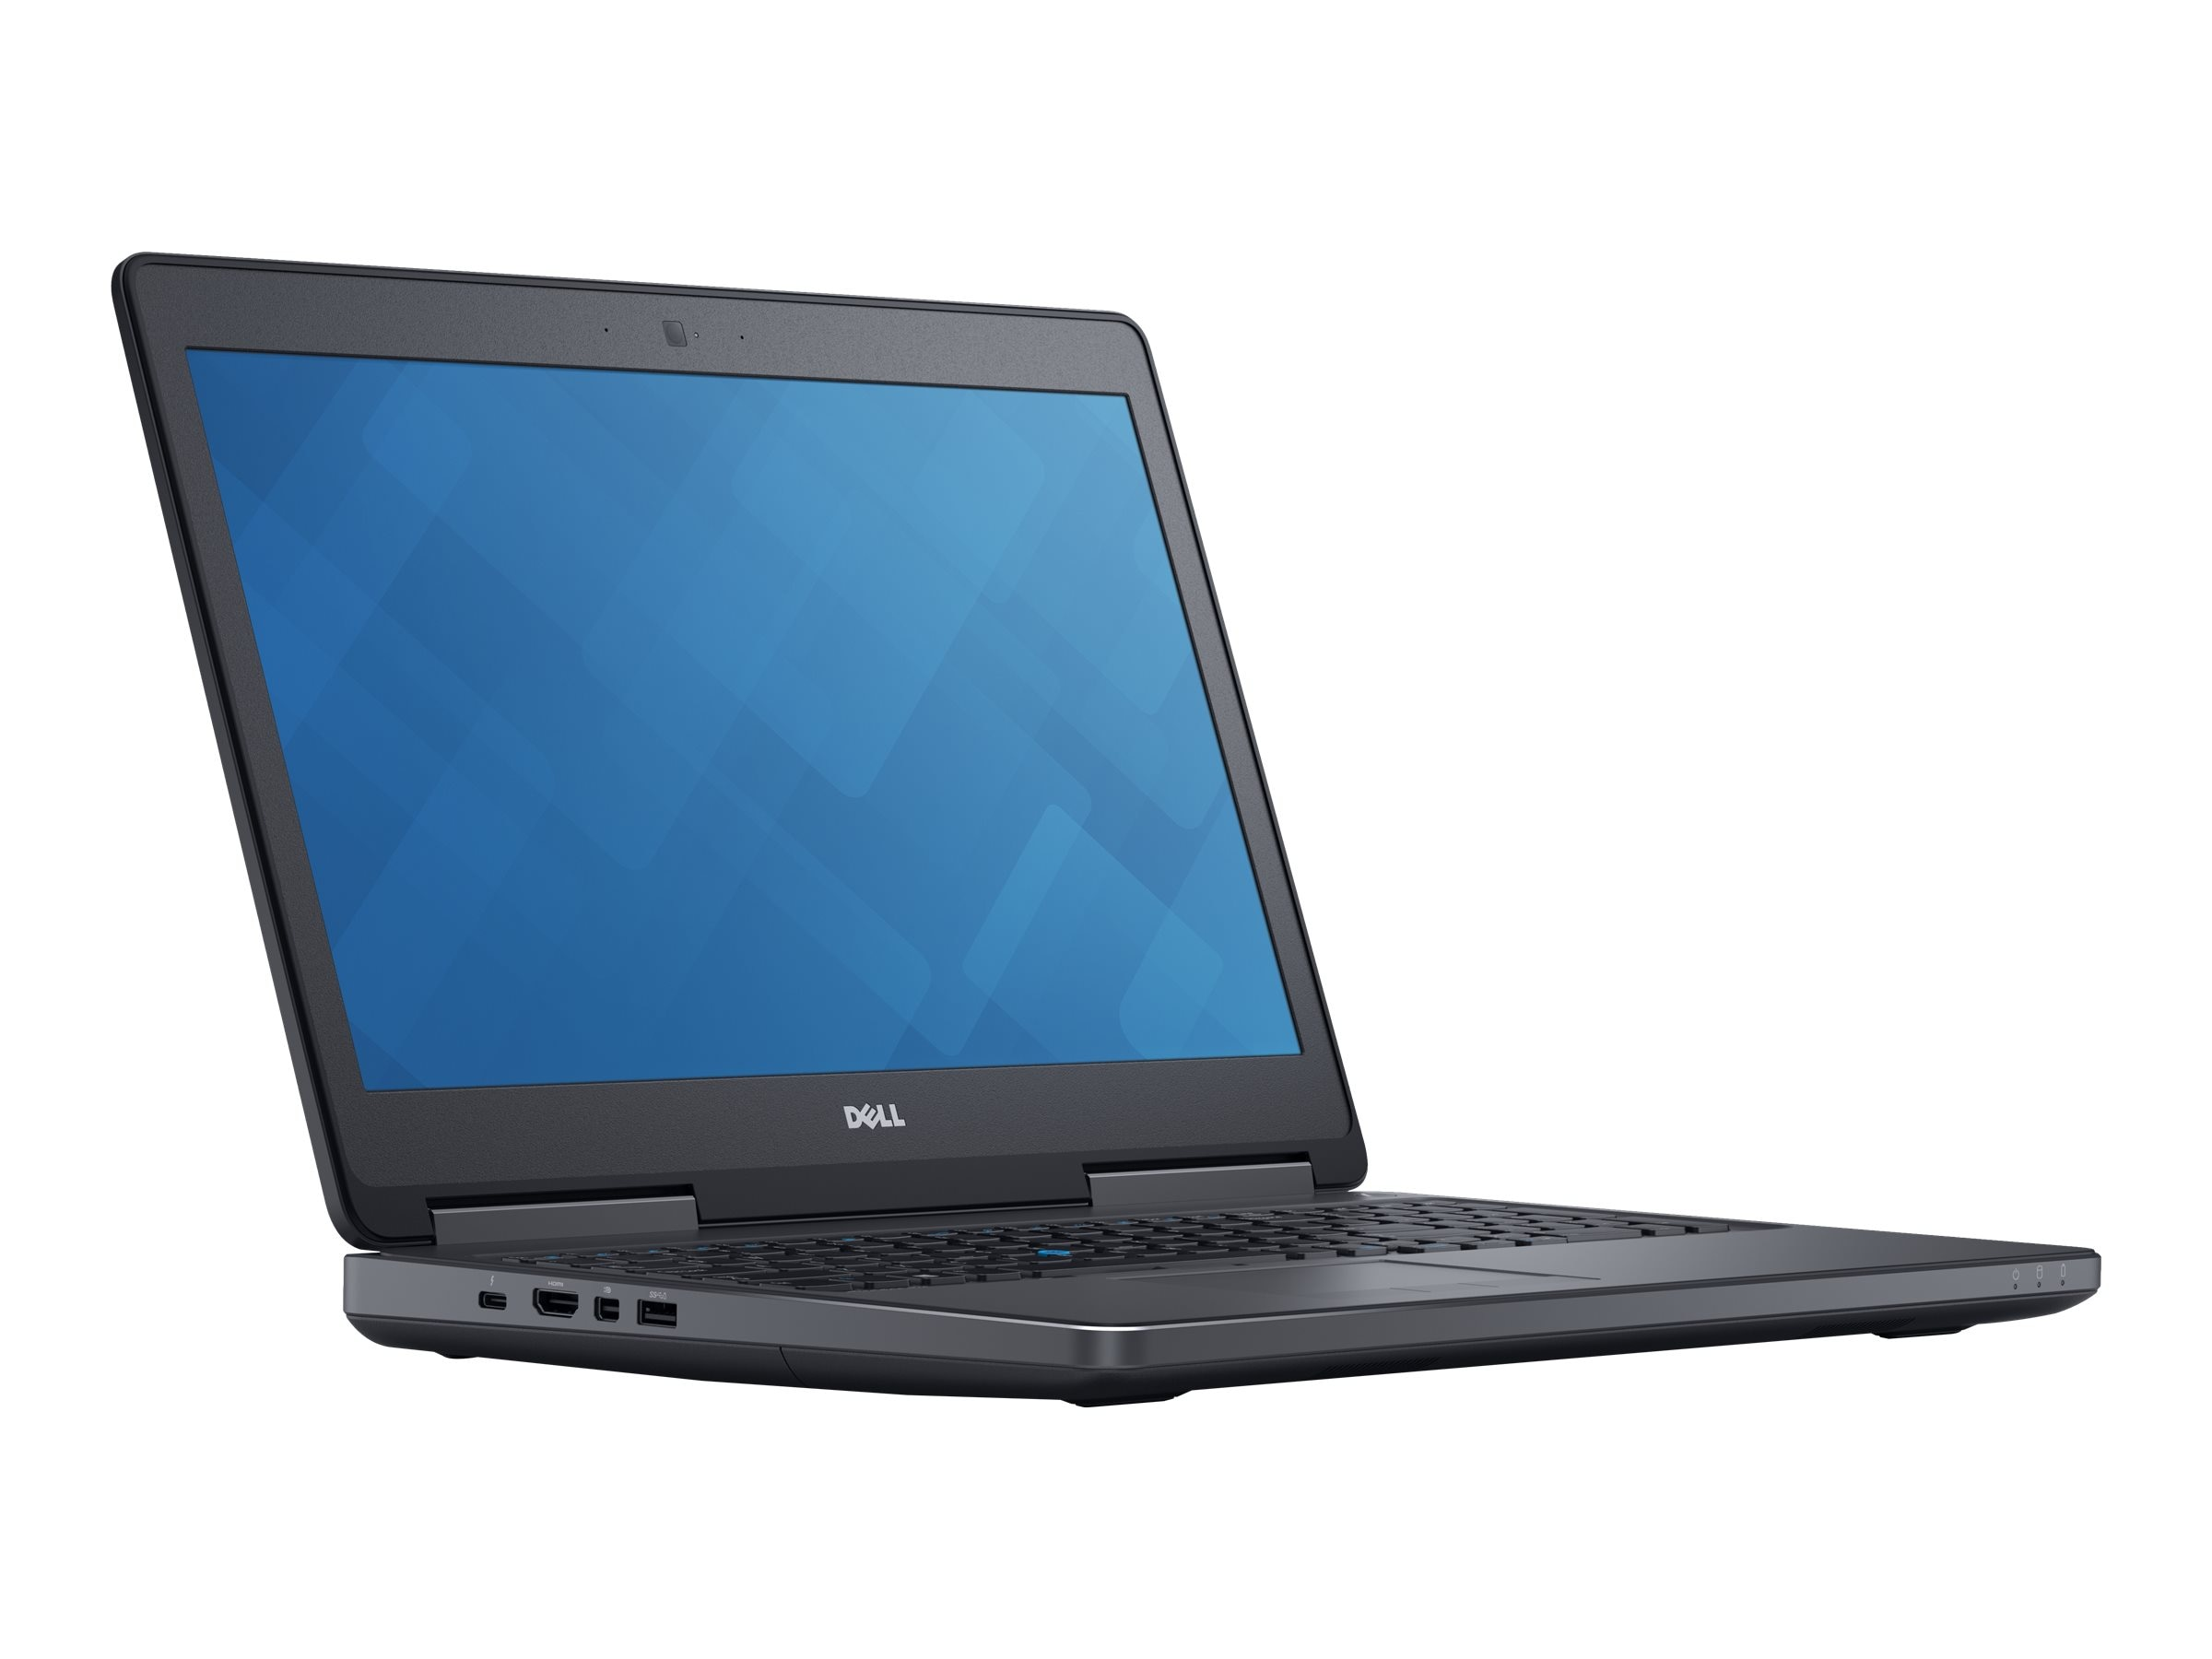 Dell Precision 7510 Core i7-6820HQ 2.7GHz 8GB 256GB PCIe ac BT WC 6C M1000M 15.6 FHD W7P64-W10, W9VXG